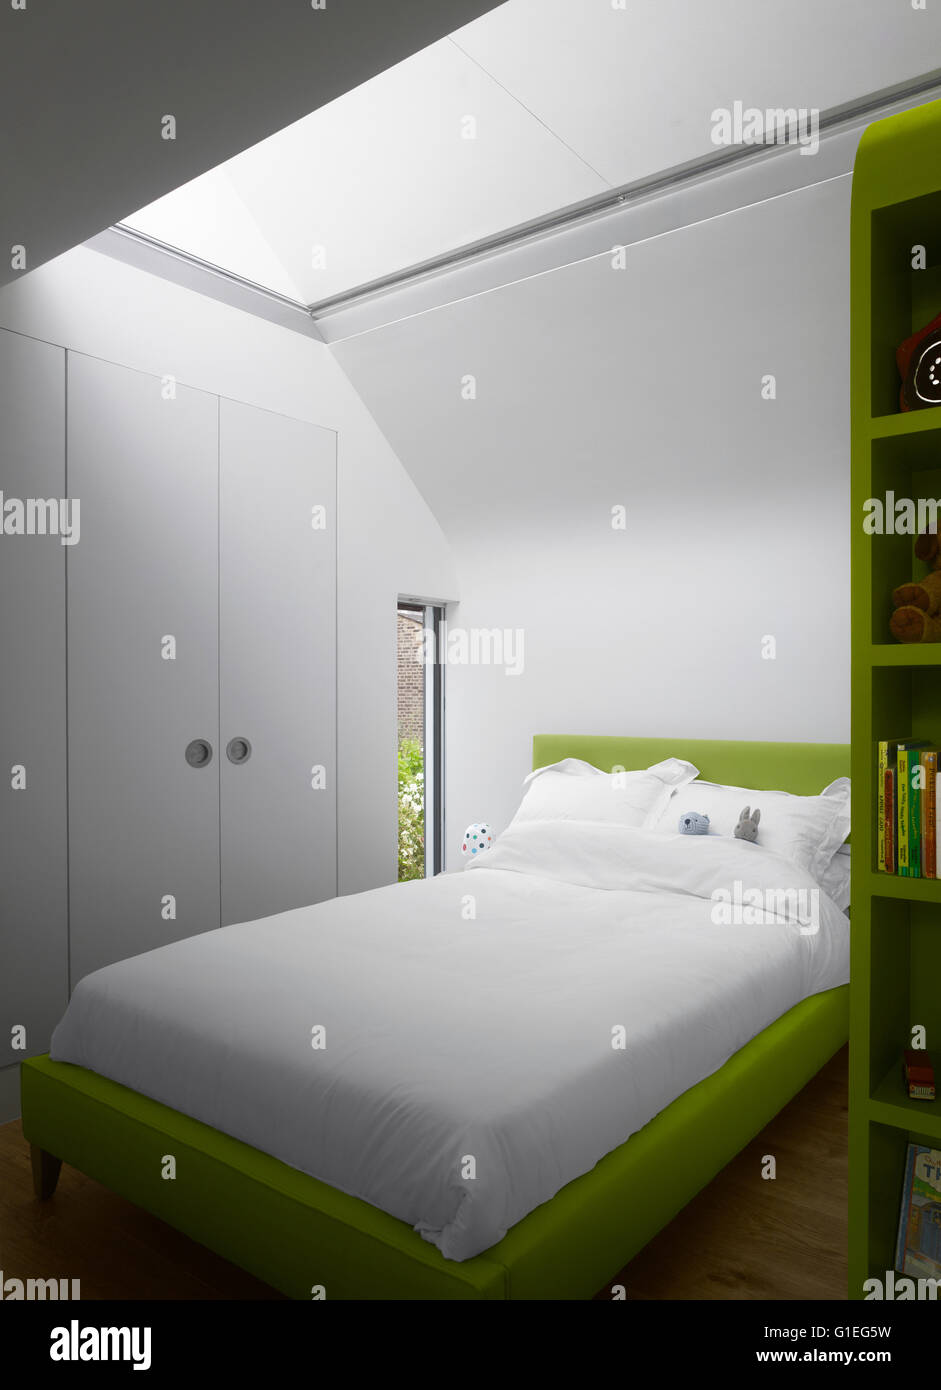 Modern Family home, Shepherds Bush, London. Bedroom with white linens and green accents. - Stock Image